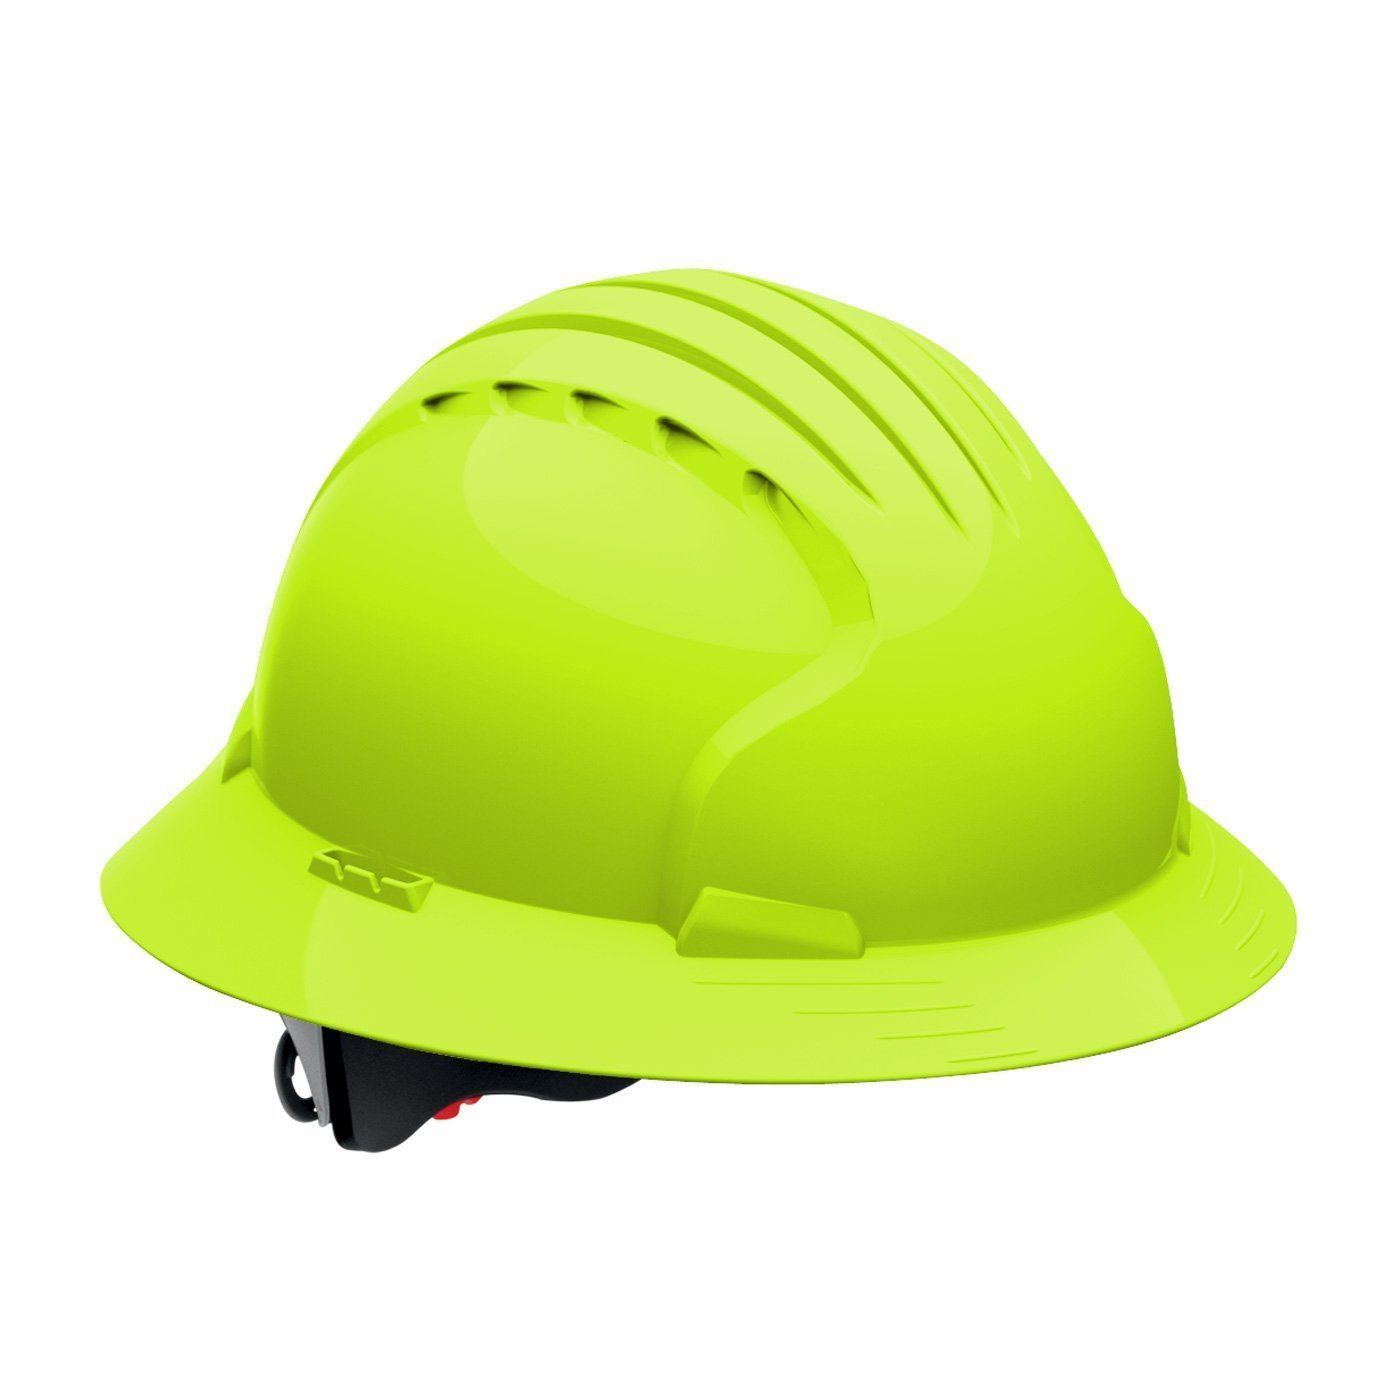 Evolution Deluxe 6161 280-EV6161-10 Full Brim Hard Hat with HDPE Shell, 6-Point Polyester Suspension and Wheel Ratchet Adjustment (VENTED, Hi Viz Lime Green) by Evolution Deluxe 6161